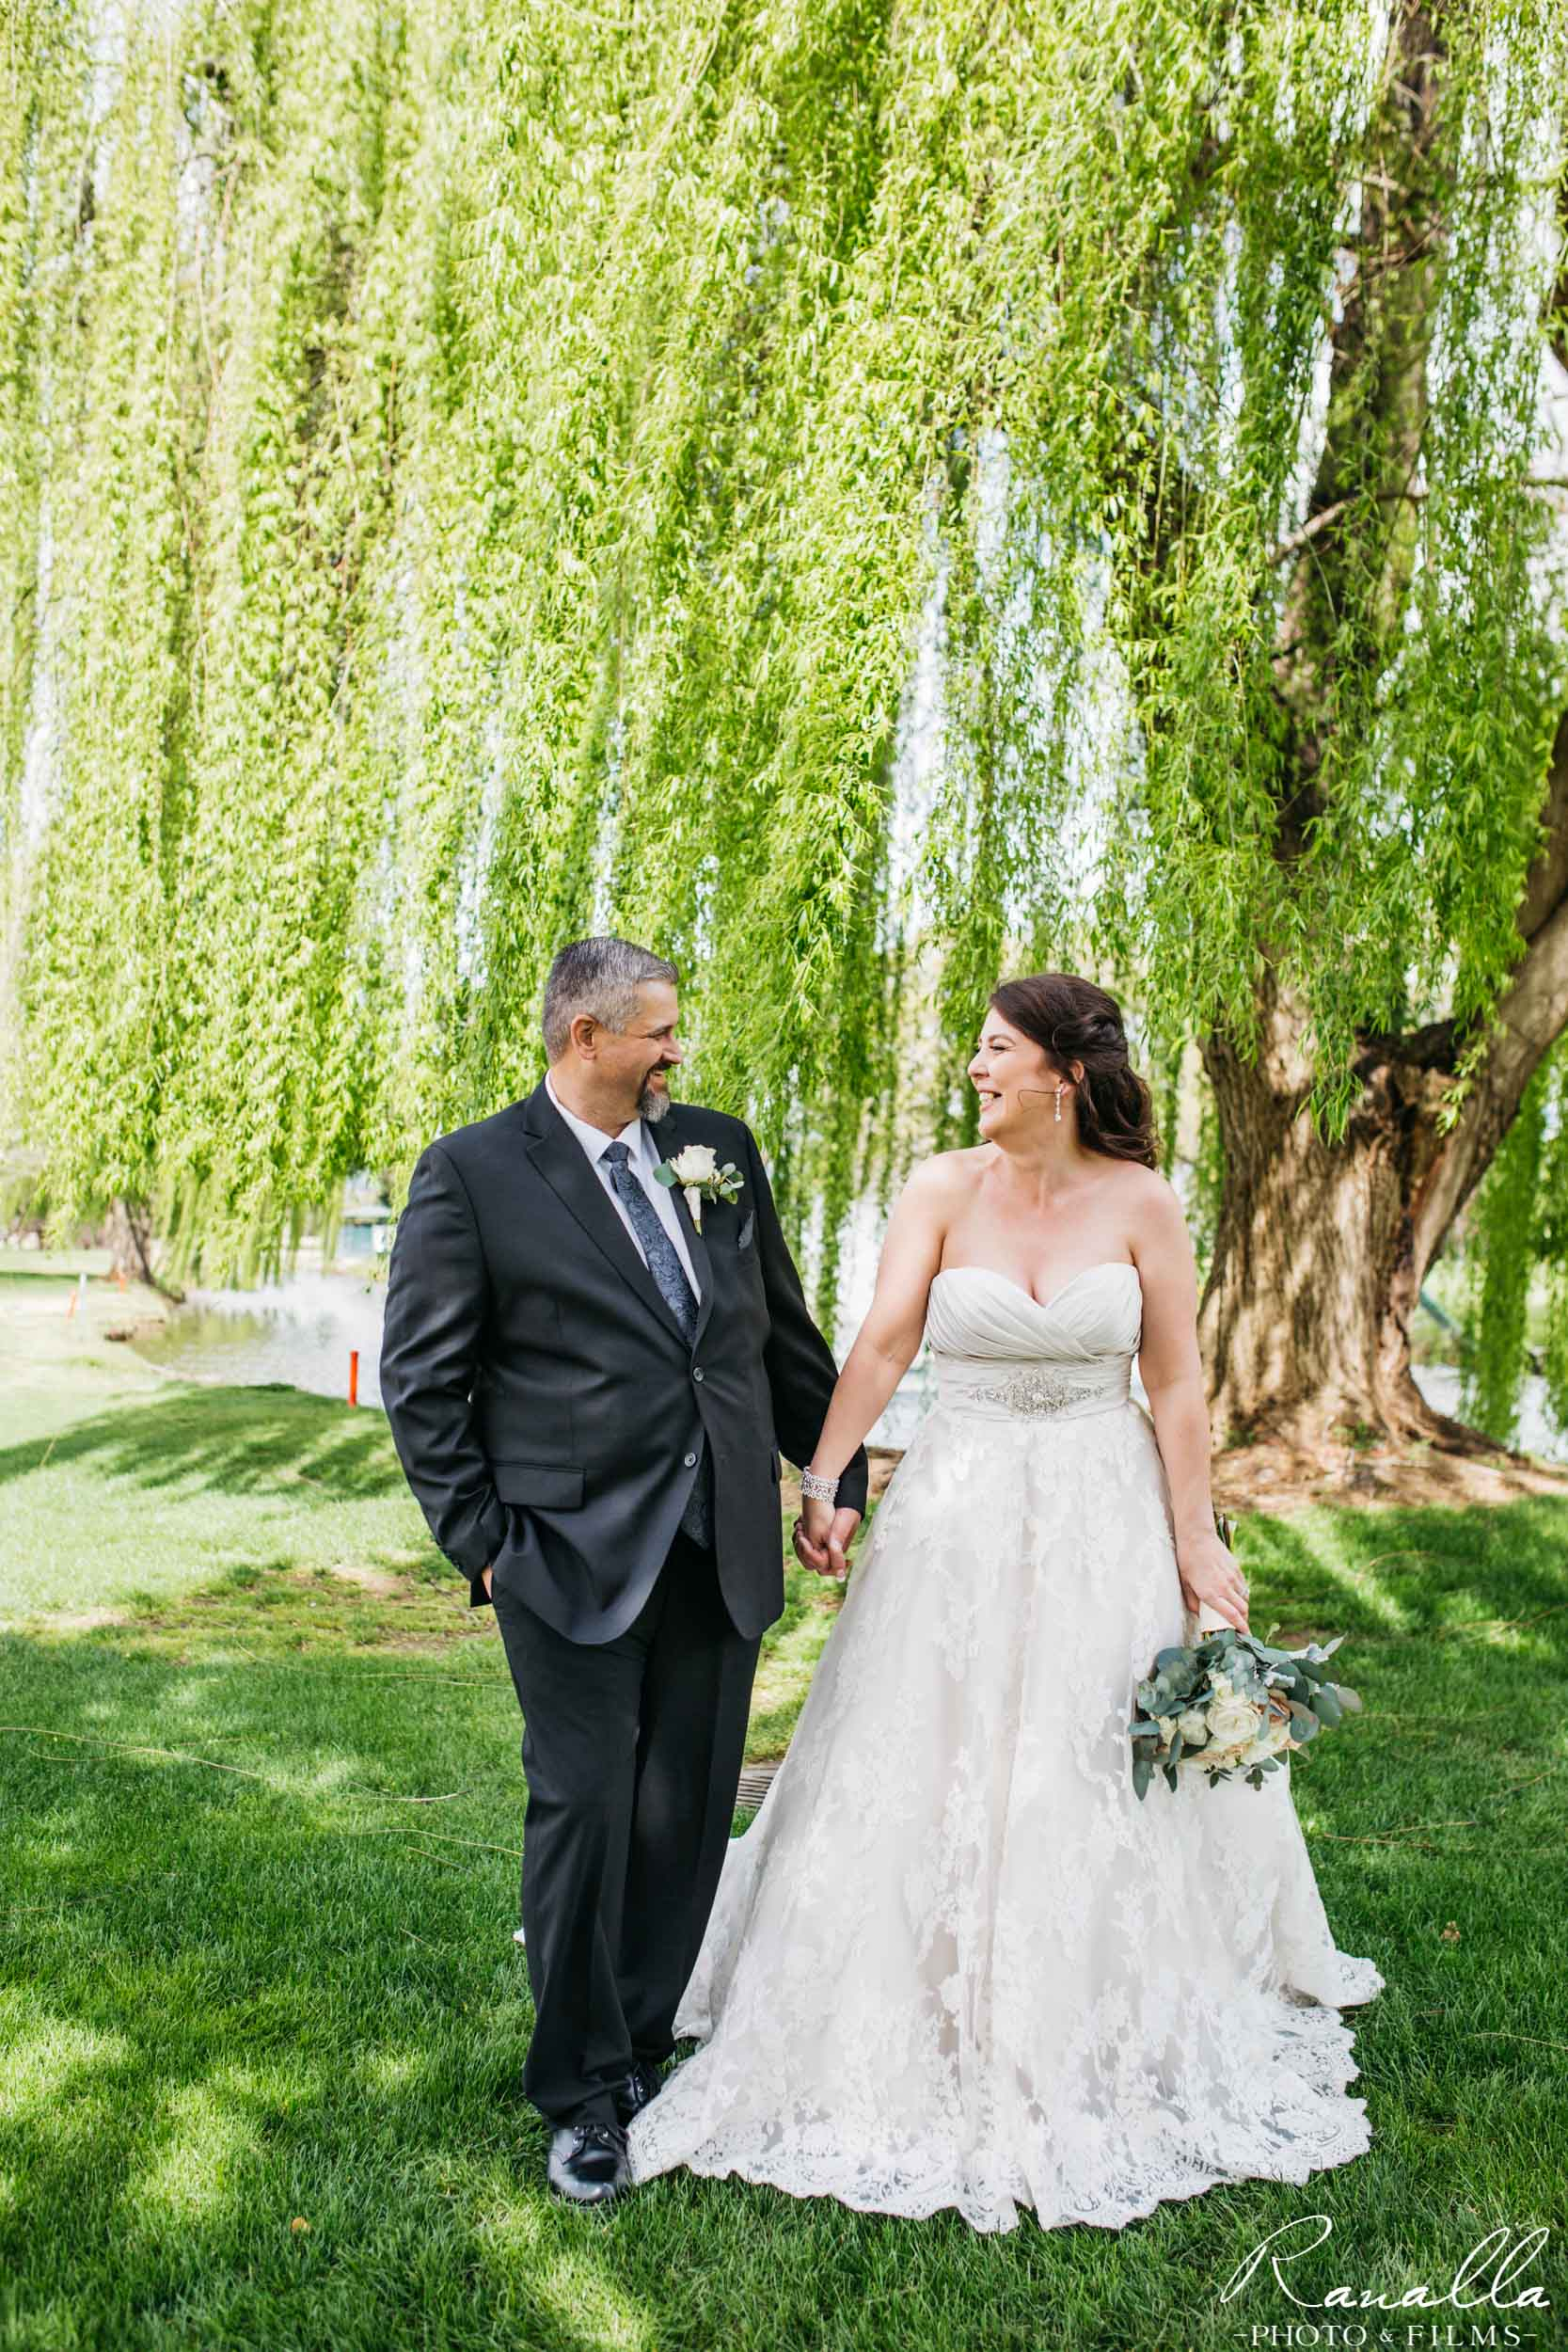 Chico Wedding Photography- Bride and Groom- Strapless Wedding Dress- Live Oak Trees- Butte Creek Country Club- Simply Elegant Bridal- Lavender Blue- Ranalla Photo & Films